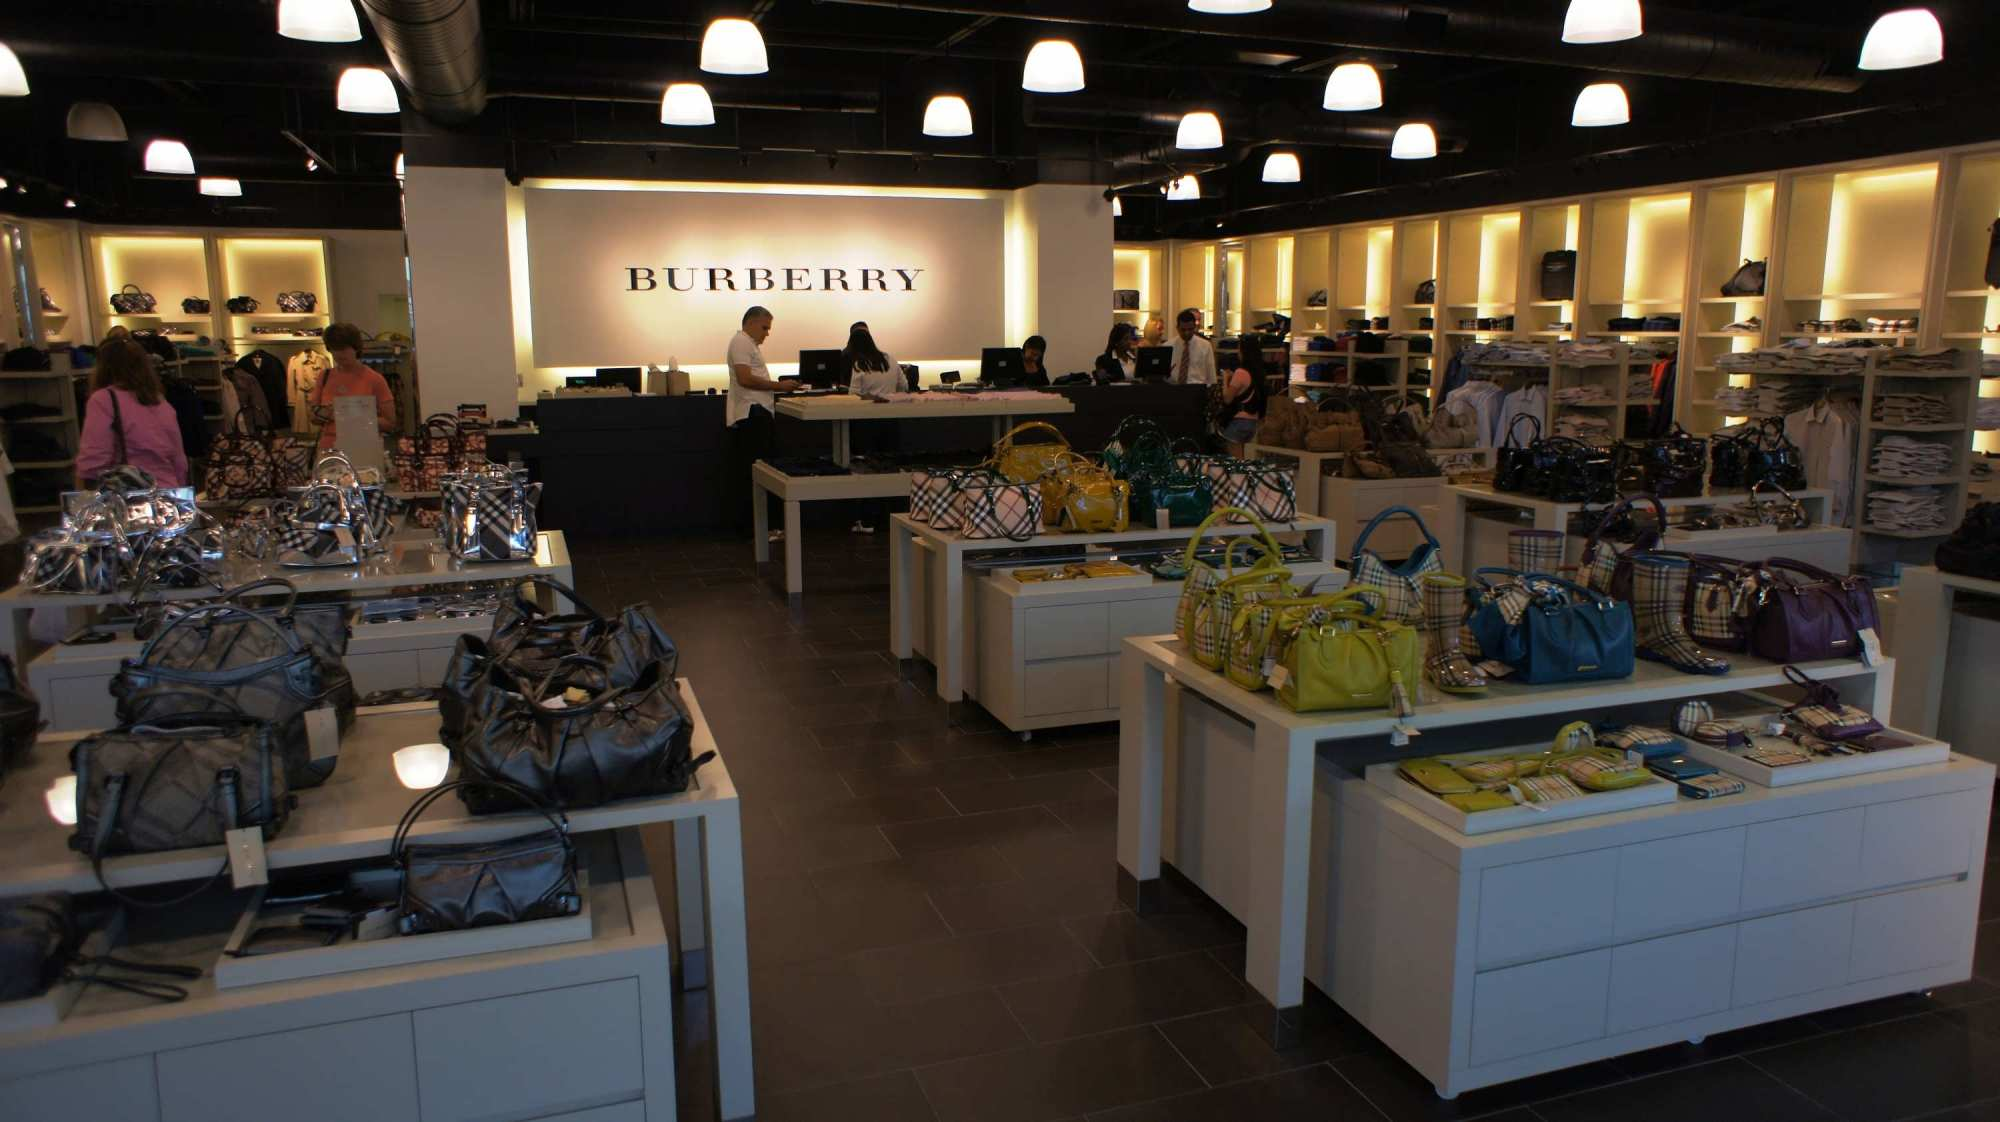 df4619c494a2 Burberry Outlet Malls